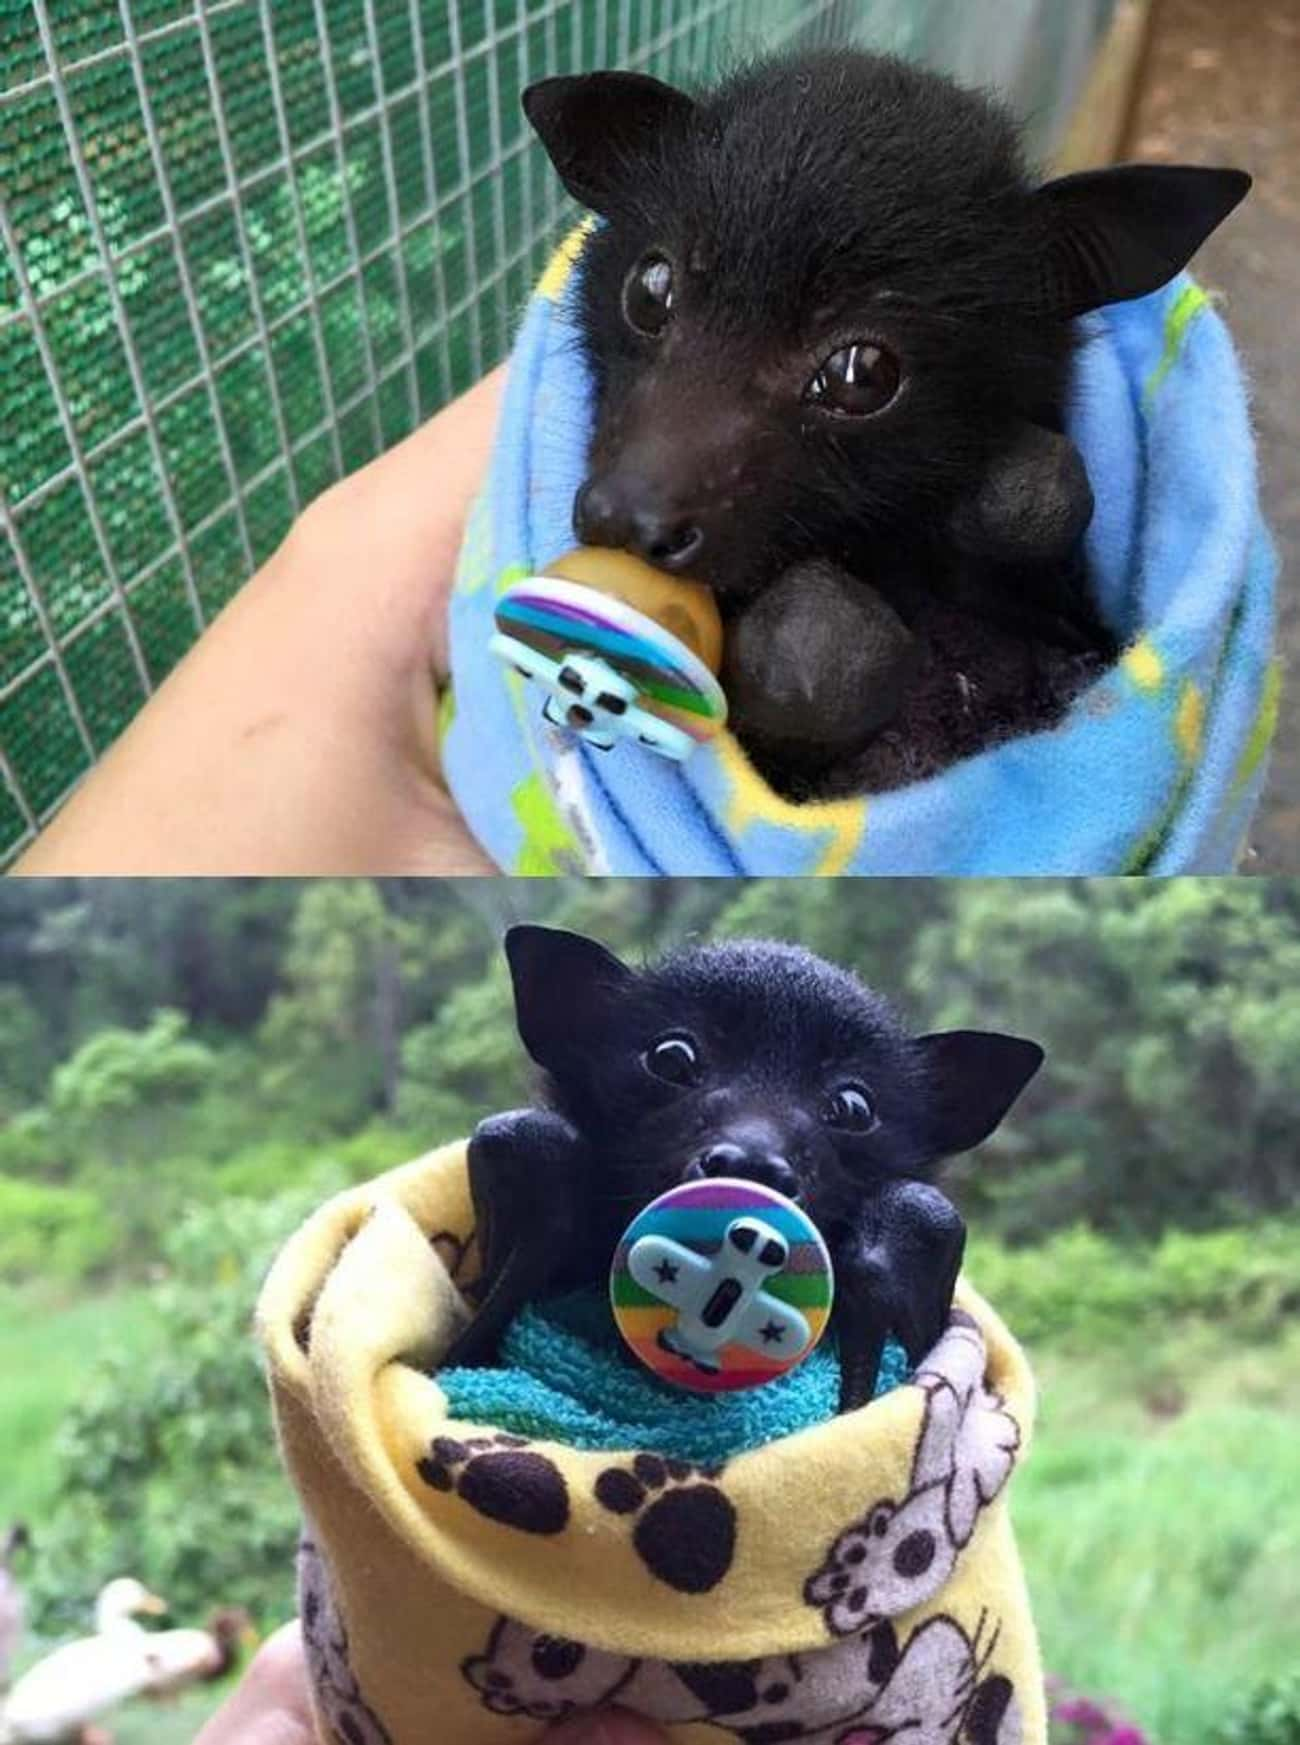 Prepare To Enter Cuteness Over is listed (or ranked) 2 on the list 19 Bats That Prove They're Adorable Instead Of Terrifying